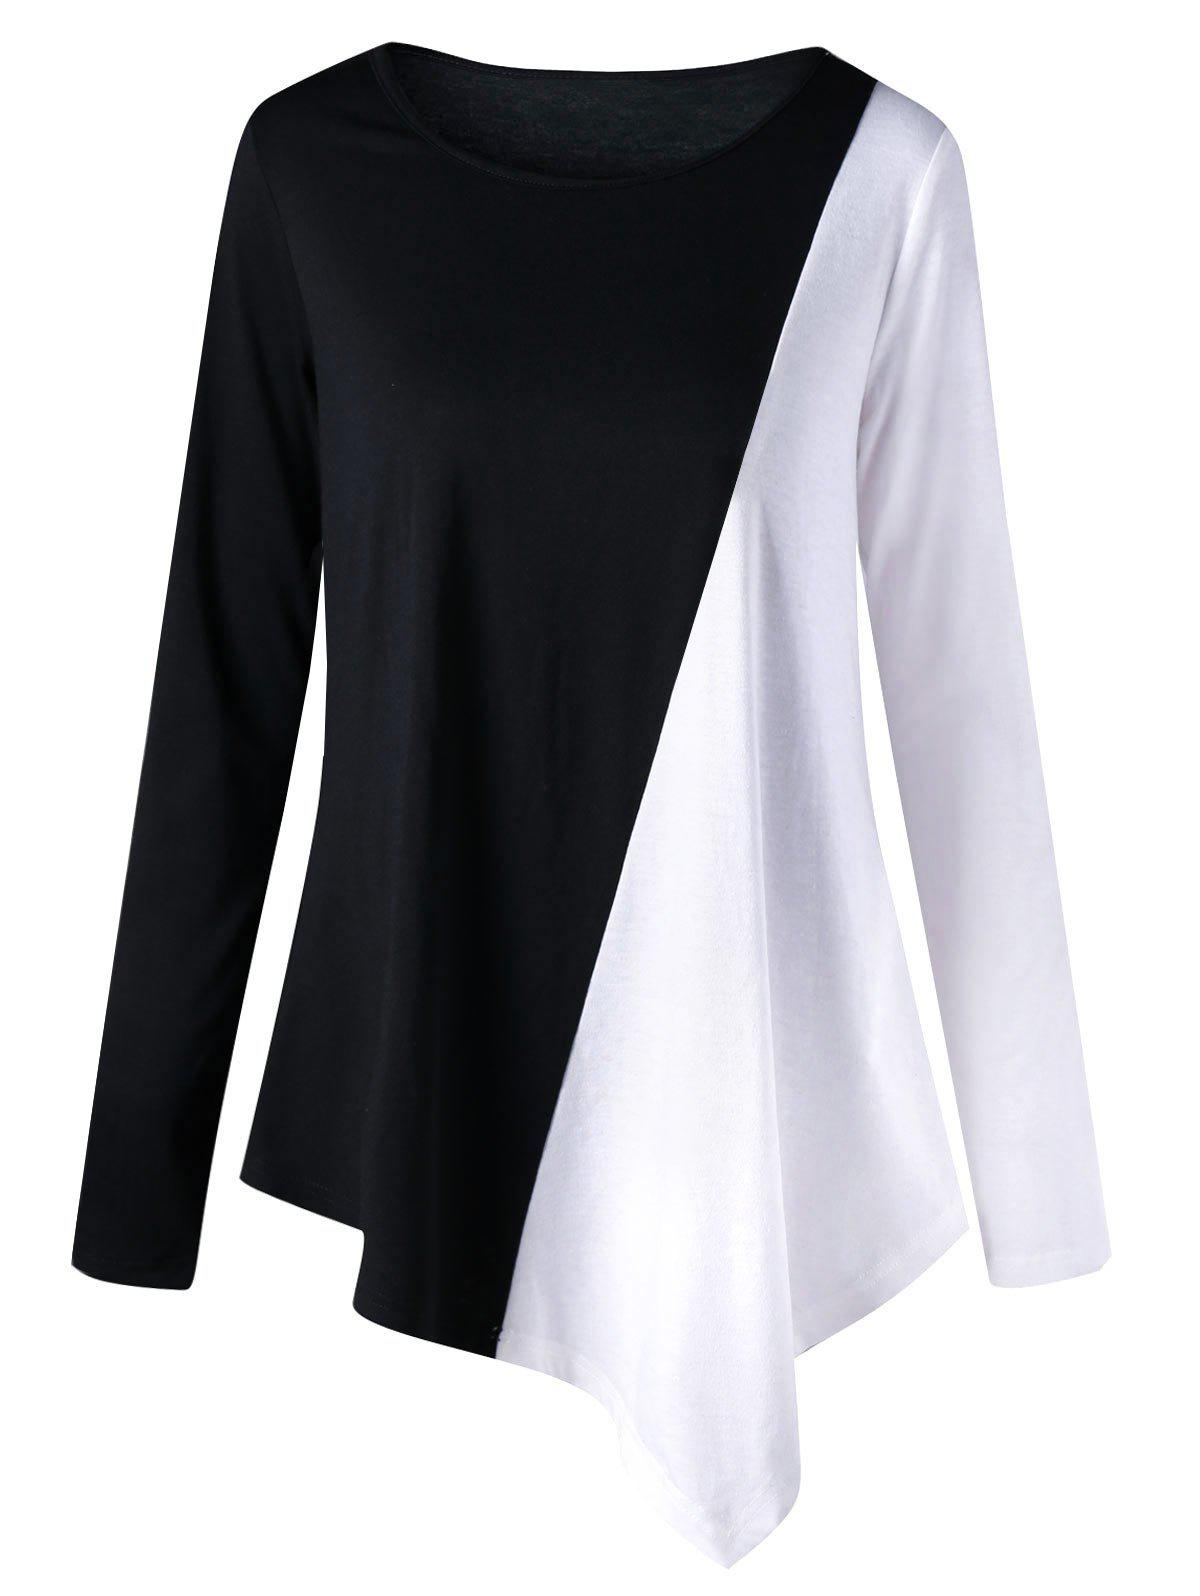 Two Tone Color Long Sleeve Asymmetric Top drop crotch loose two tone pants